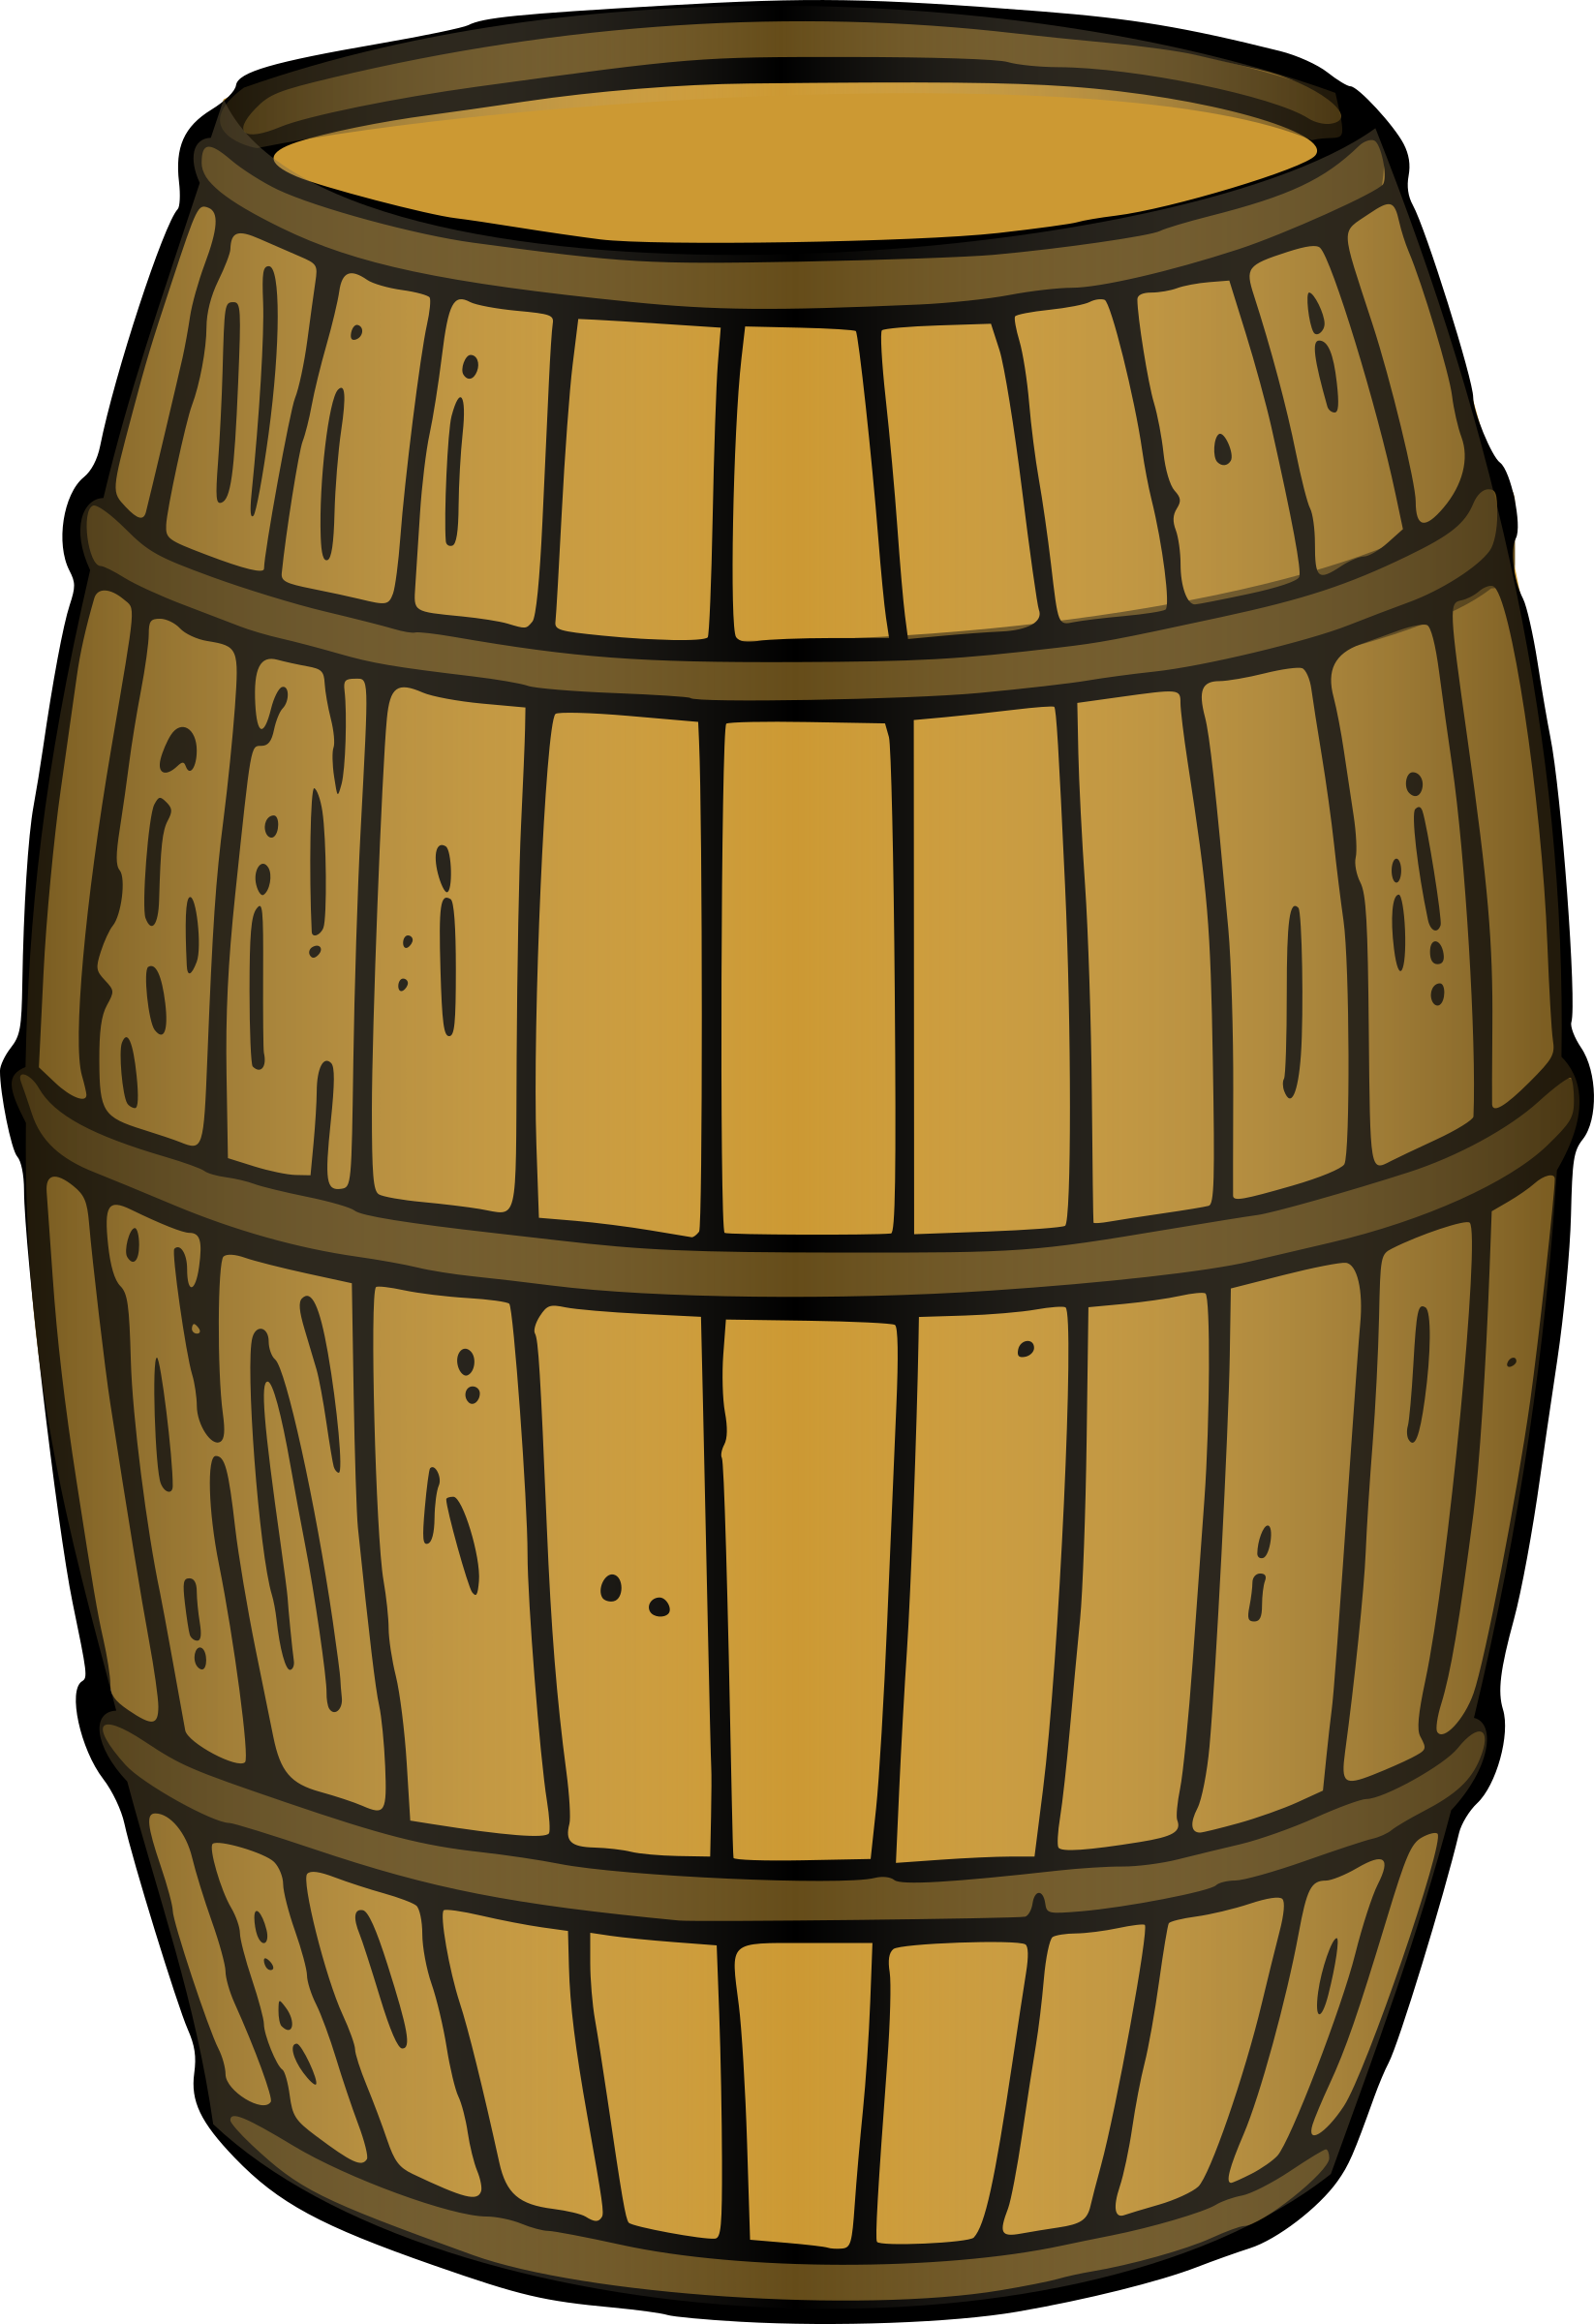 free Top free on dumielauxepices. Barrel clipart